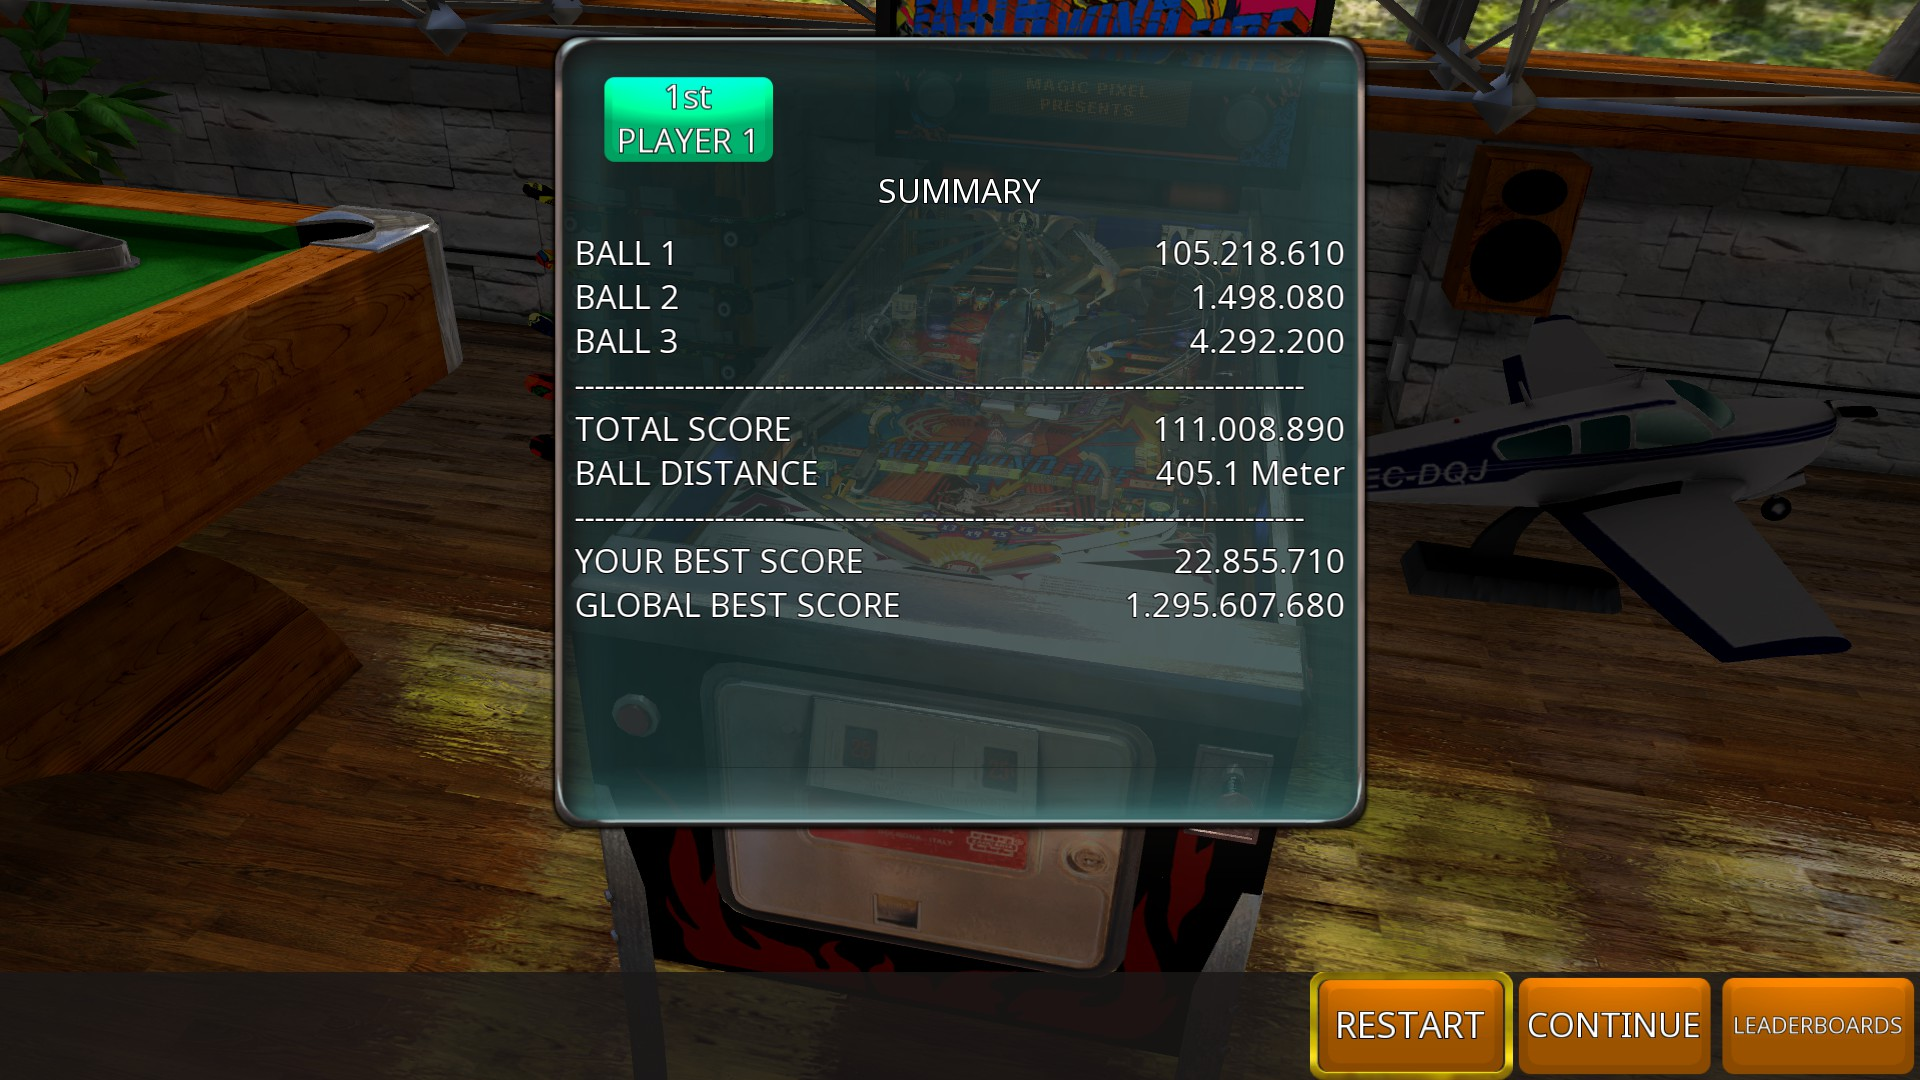 GTibel: Zaccaria Pinball: Earth Wind Fire 2017 [3 balls] (PC) 111,008,890 points on 2018-11-03 05:14:11